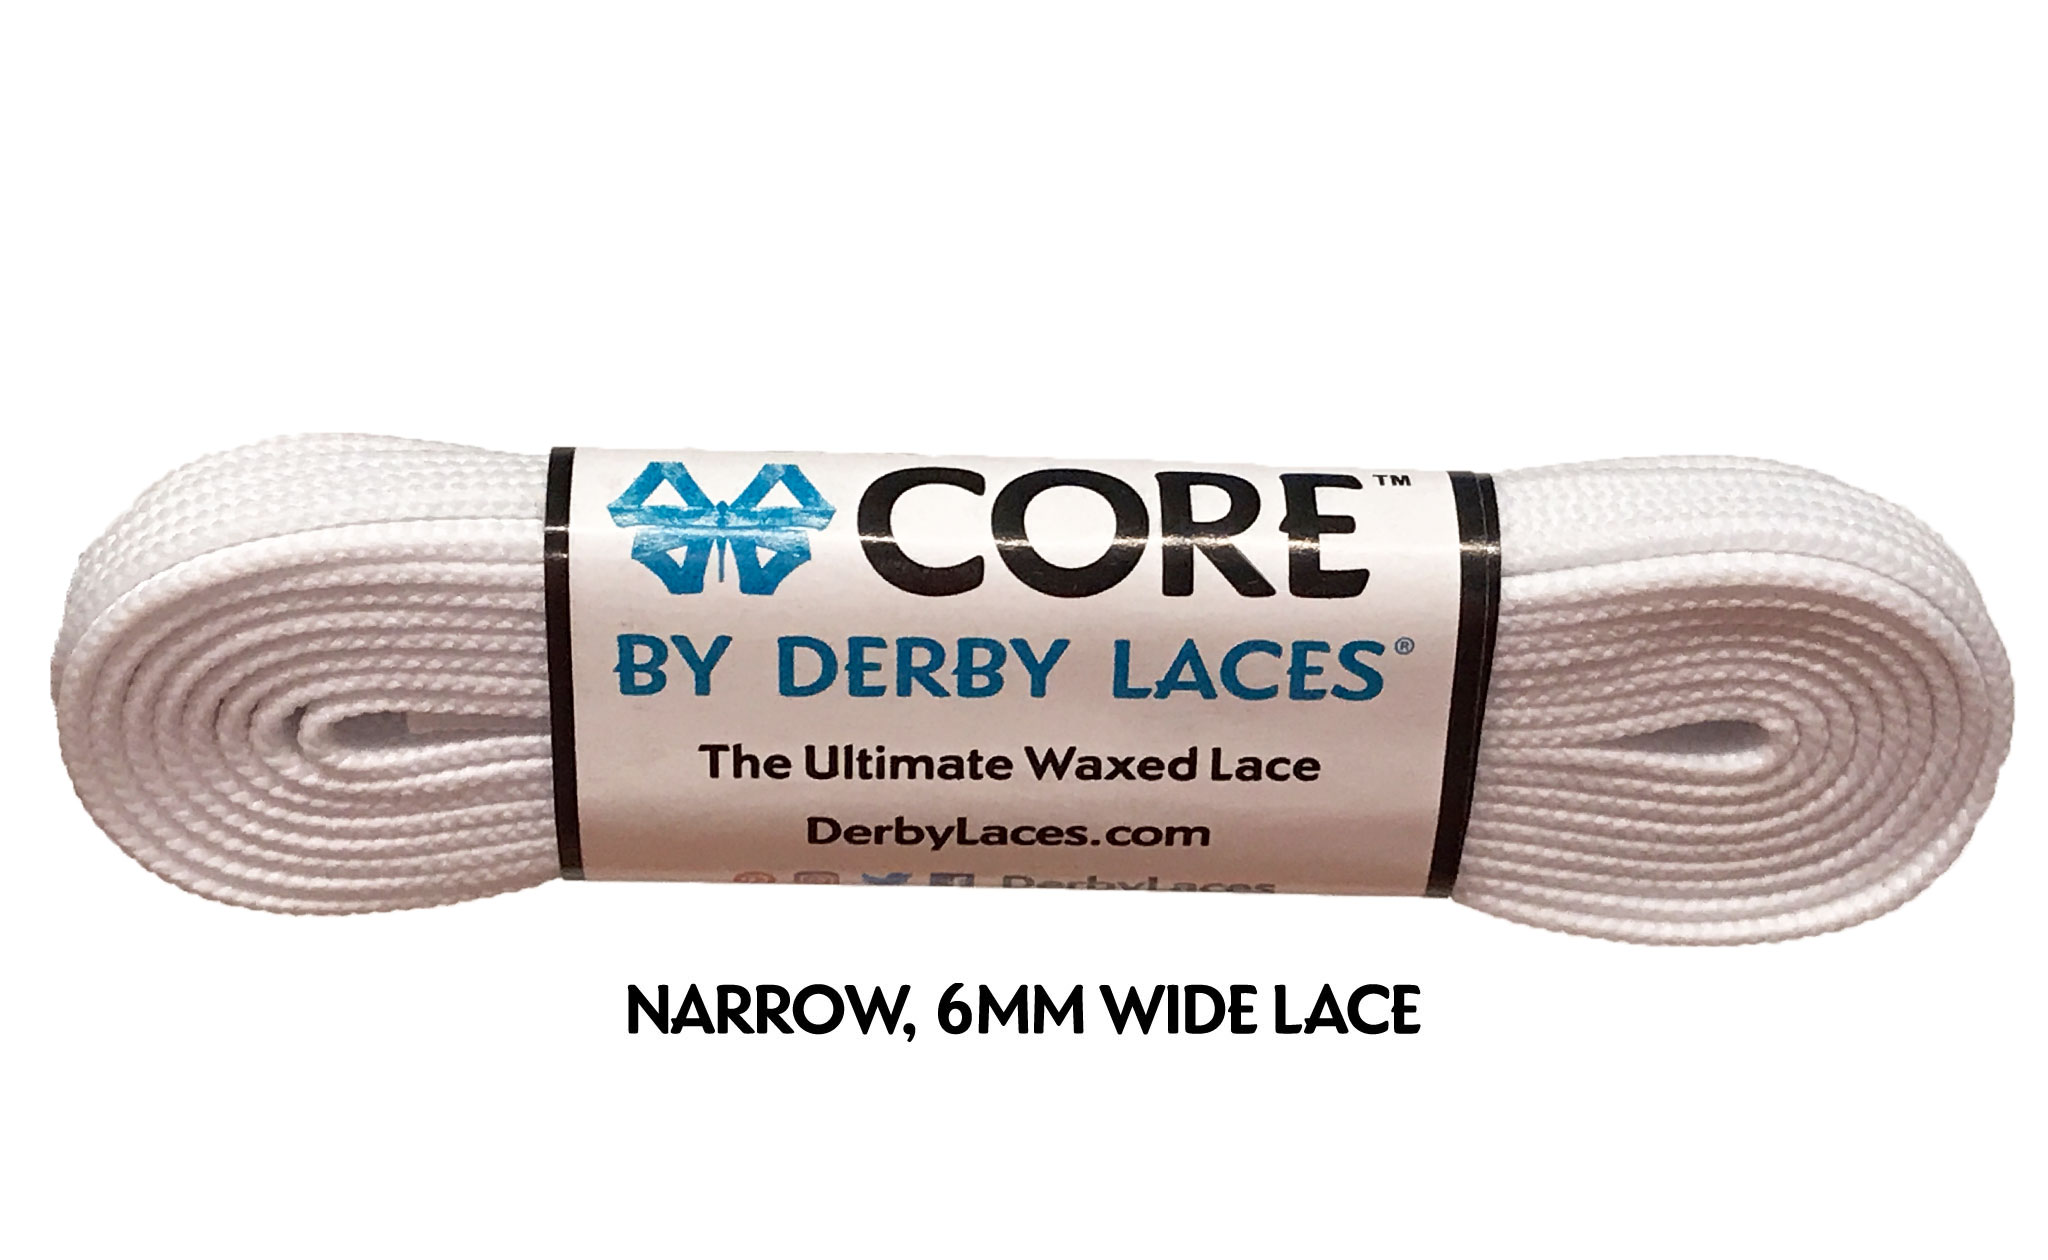 fc3c4a20a104 White 45 inch (114 cm) CORE Shoelace by Derby Laces (NARROW 6MM WIDE ...